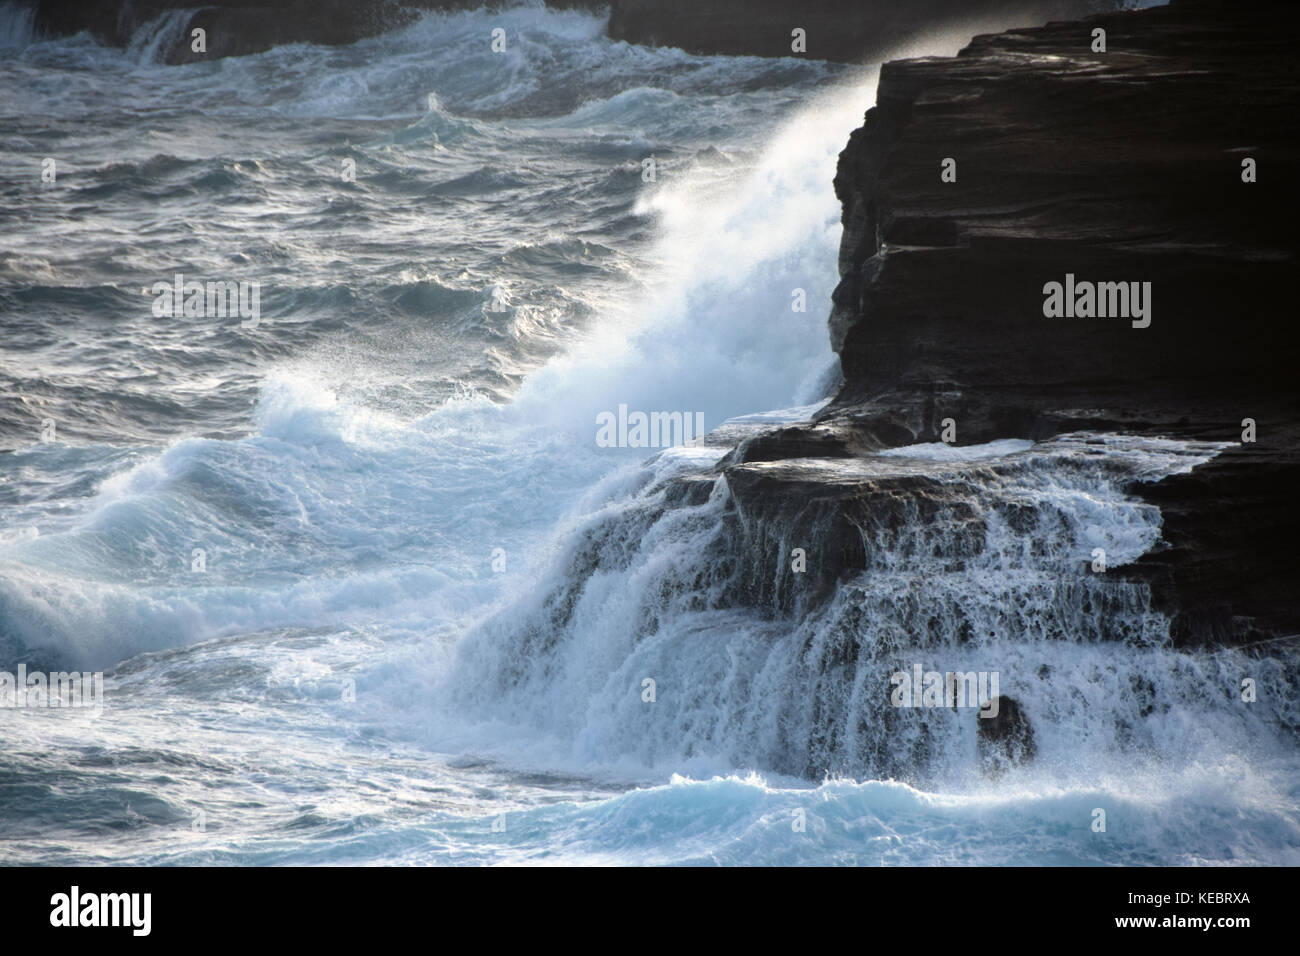 Halona Blowhole in the Southeast corner of Oahu, Hawaii is a natural opening in the rocks that spews water likeStock Photo